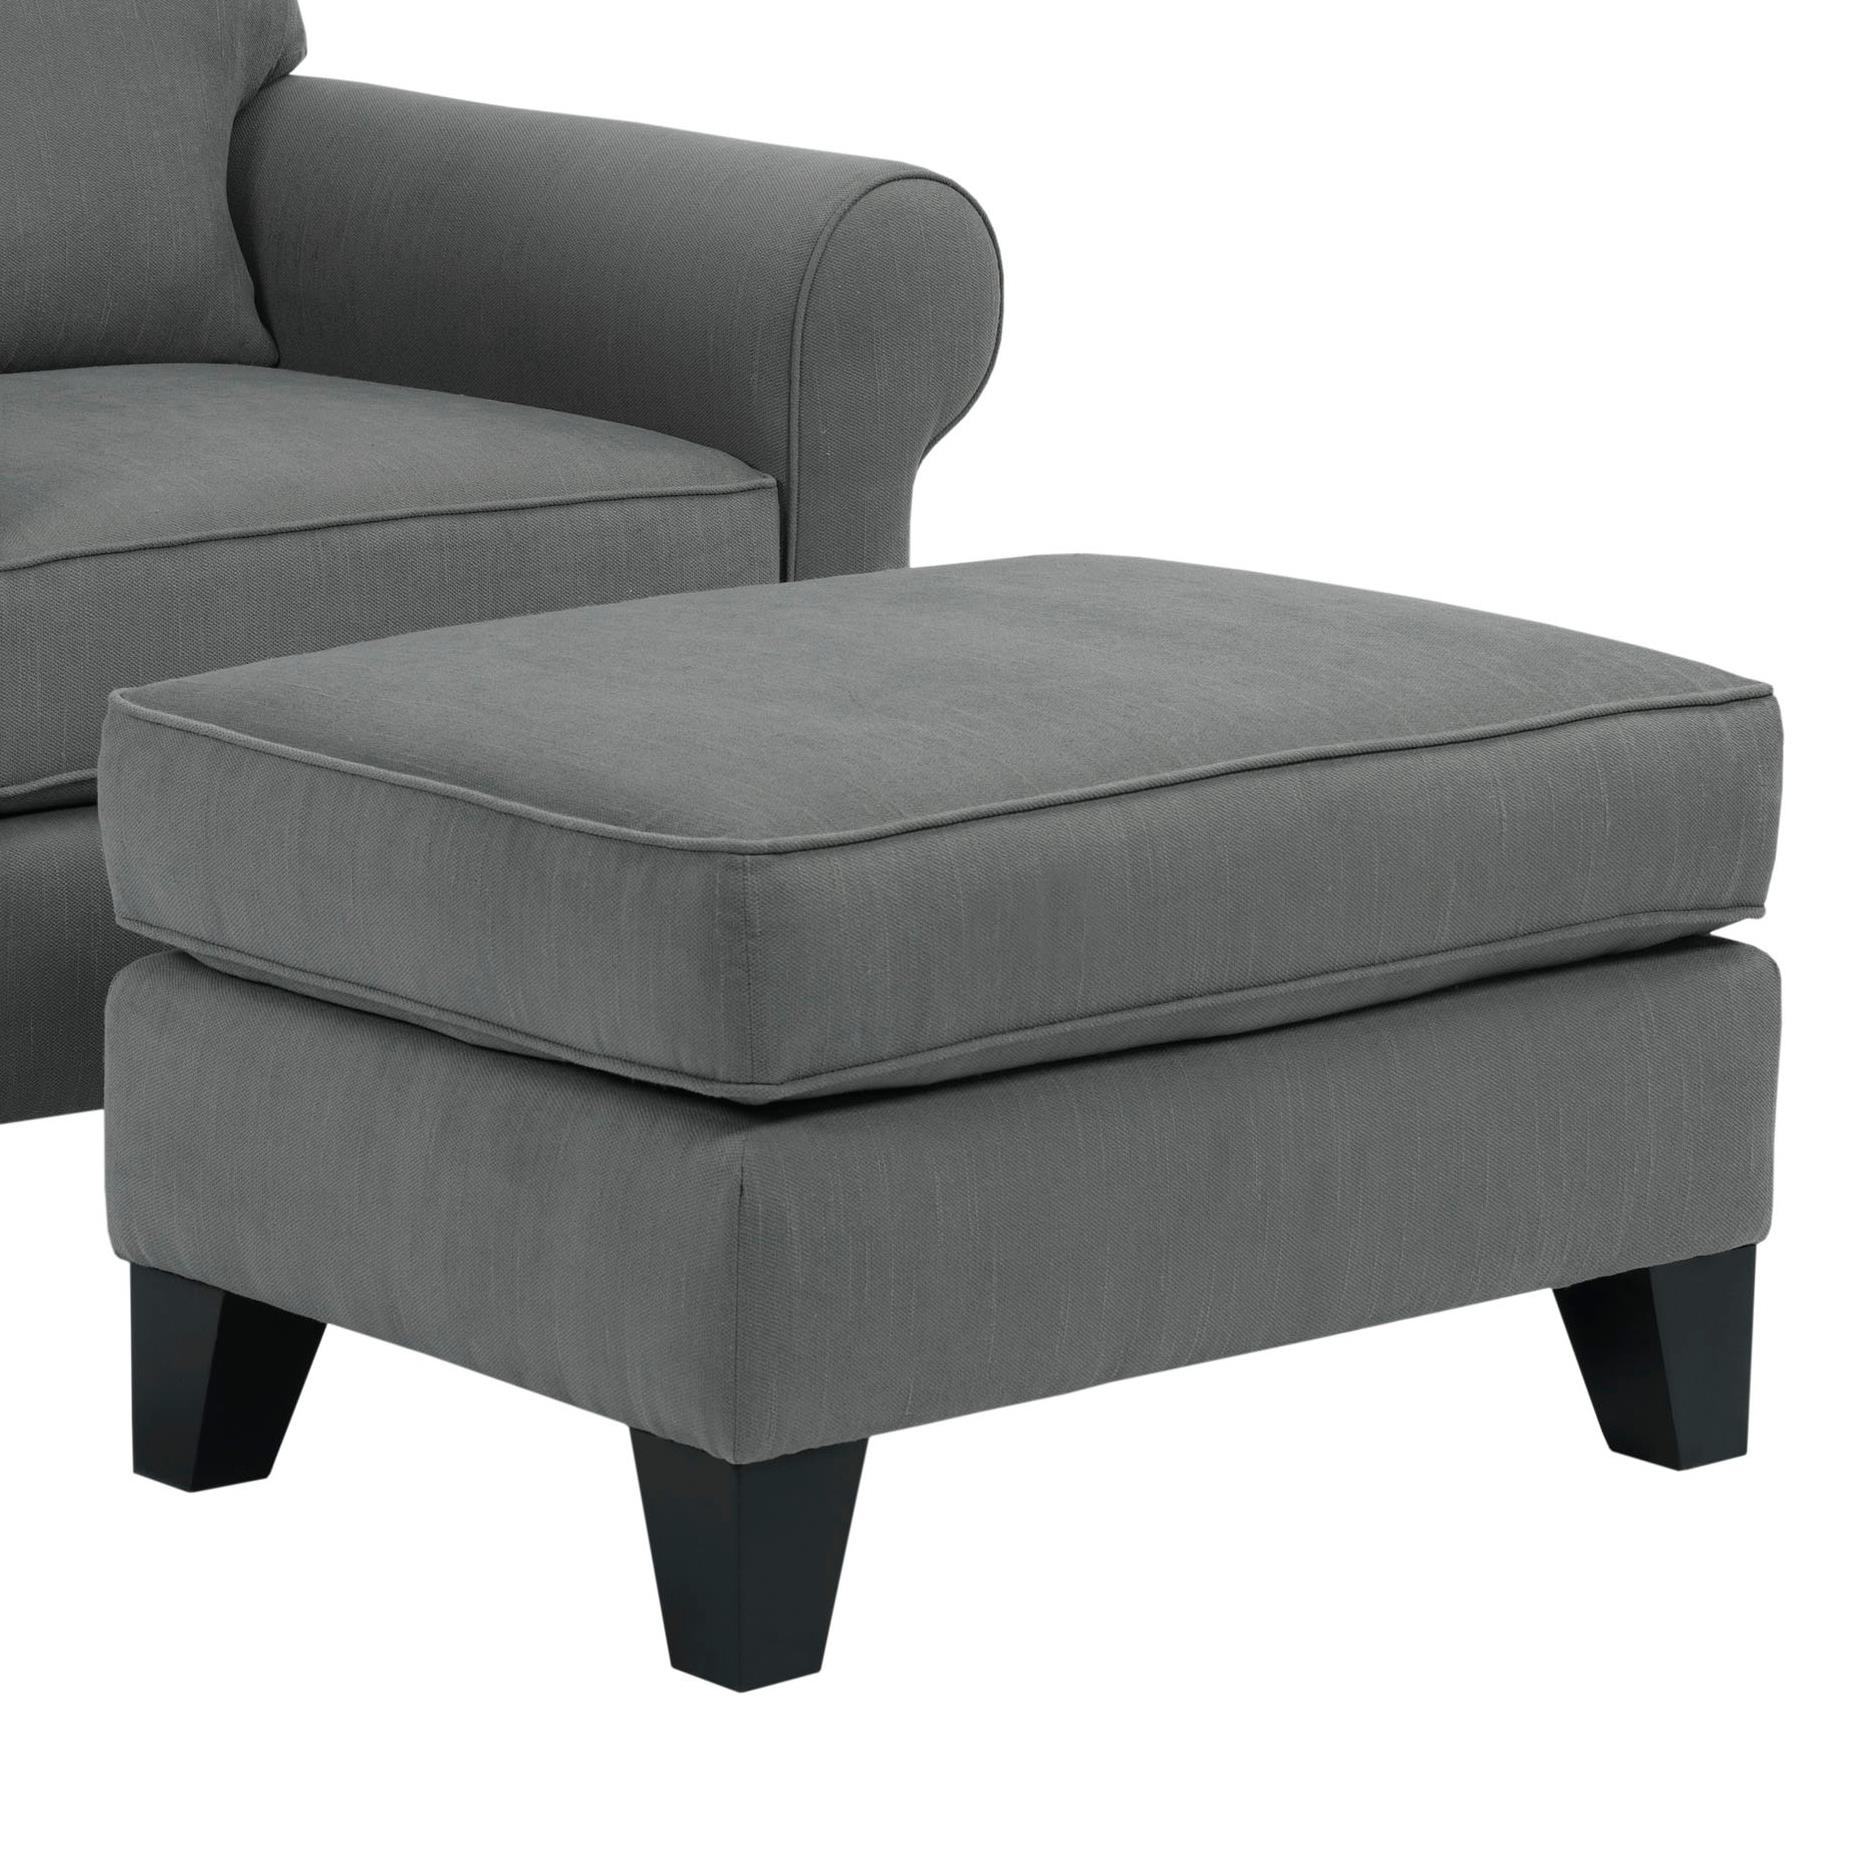 Broyhill Furniture Noda Transitional Ottoman - Item Number: 4230-5-4073-94